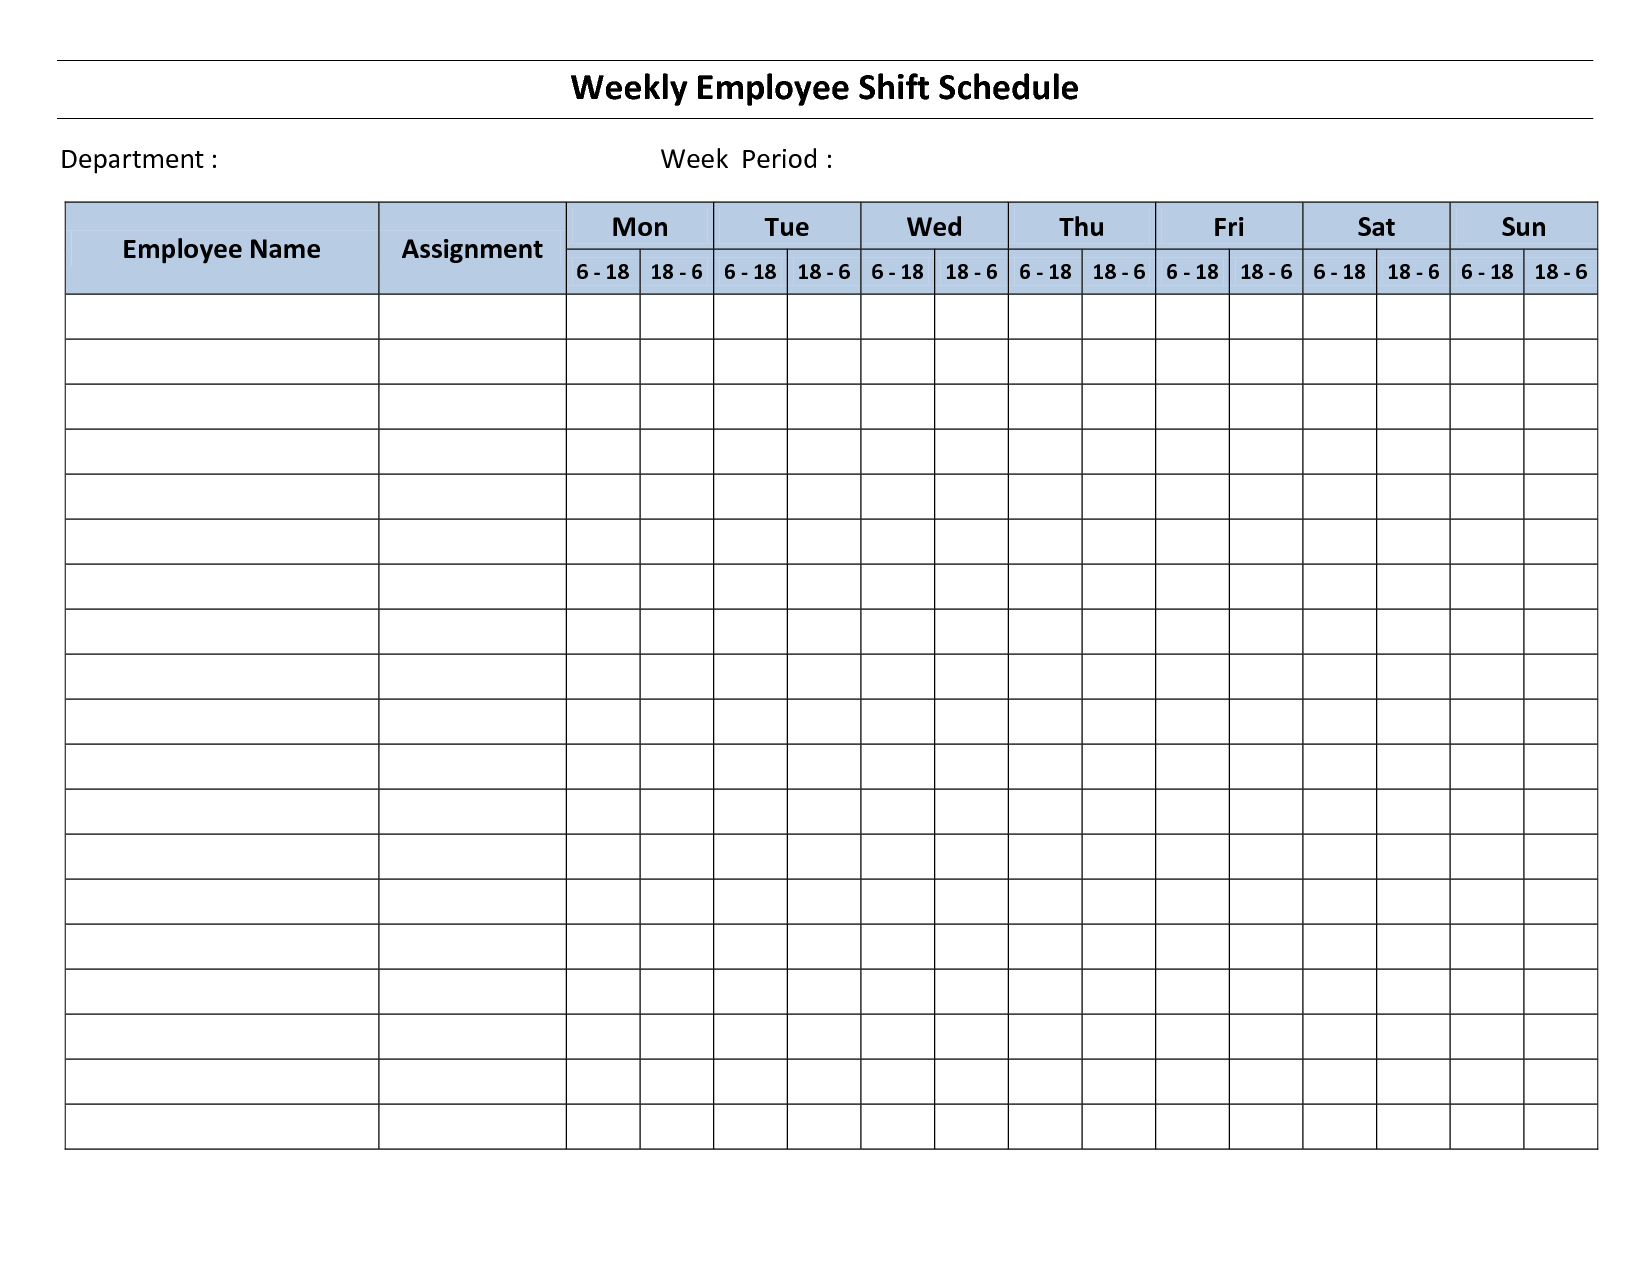 Agenda Meeting Template Word Enchanting Printable Weekly Employee Schedule Template  Wyldewood Op .